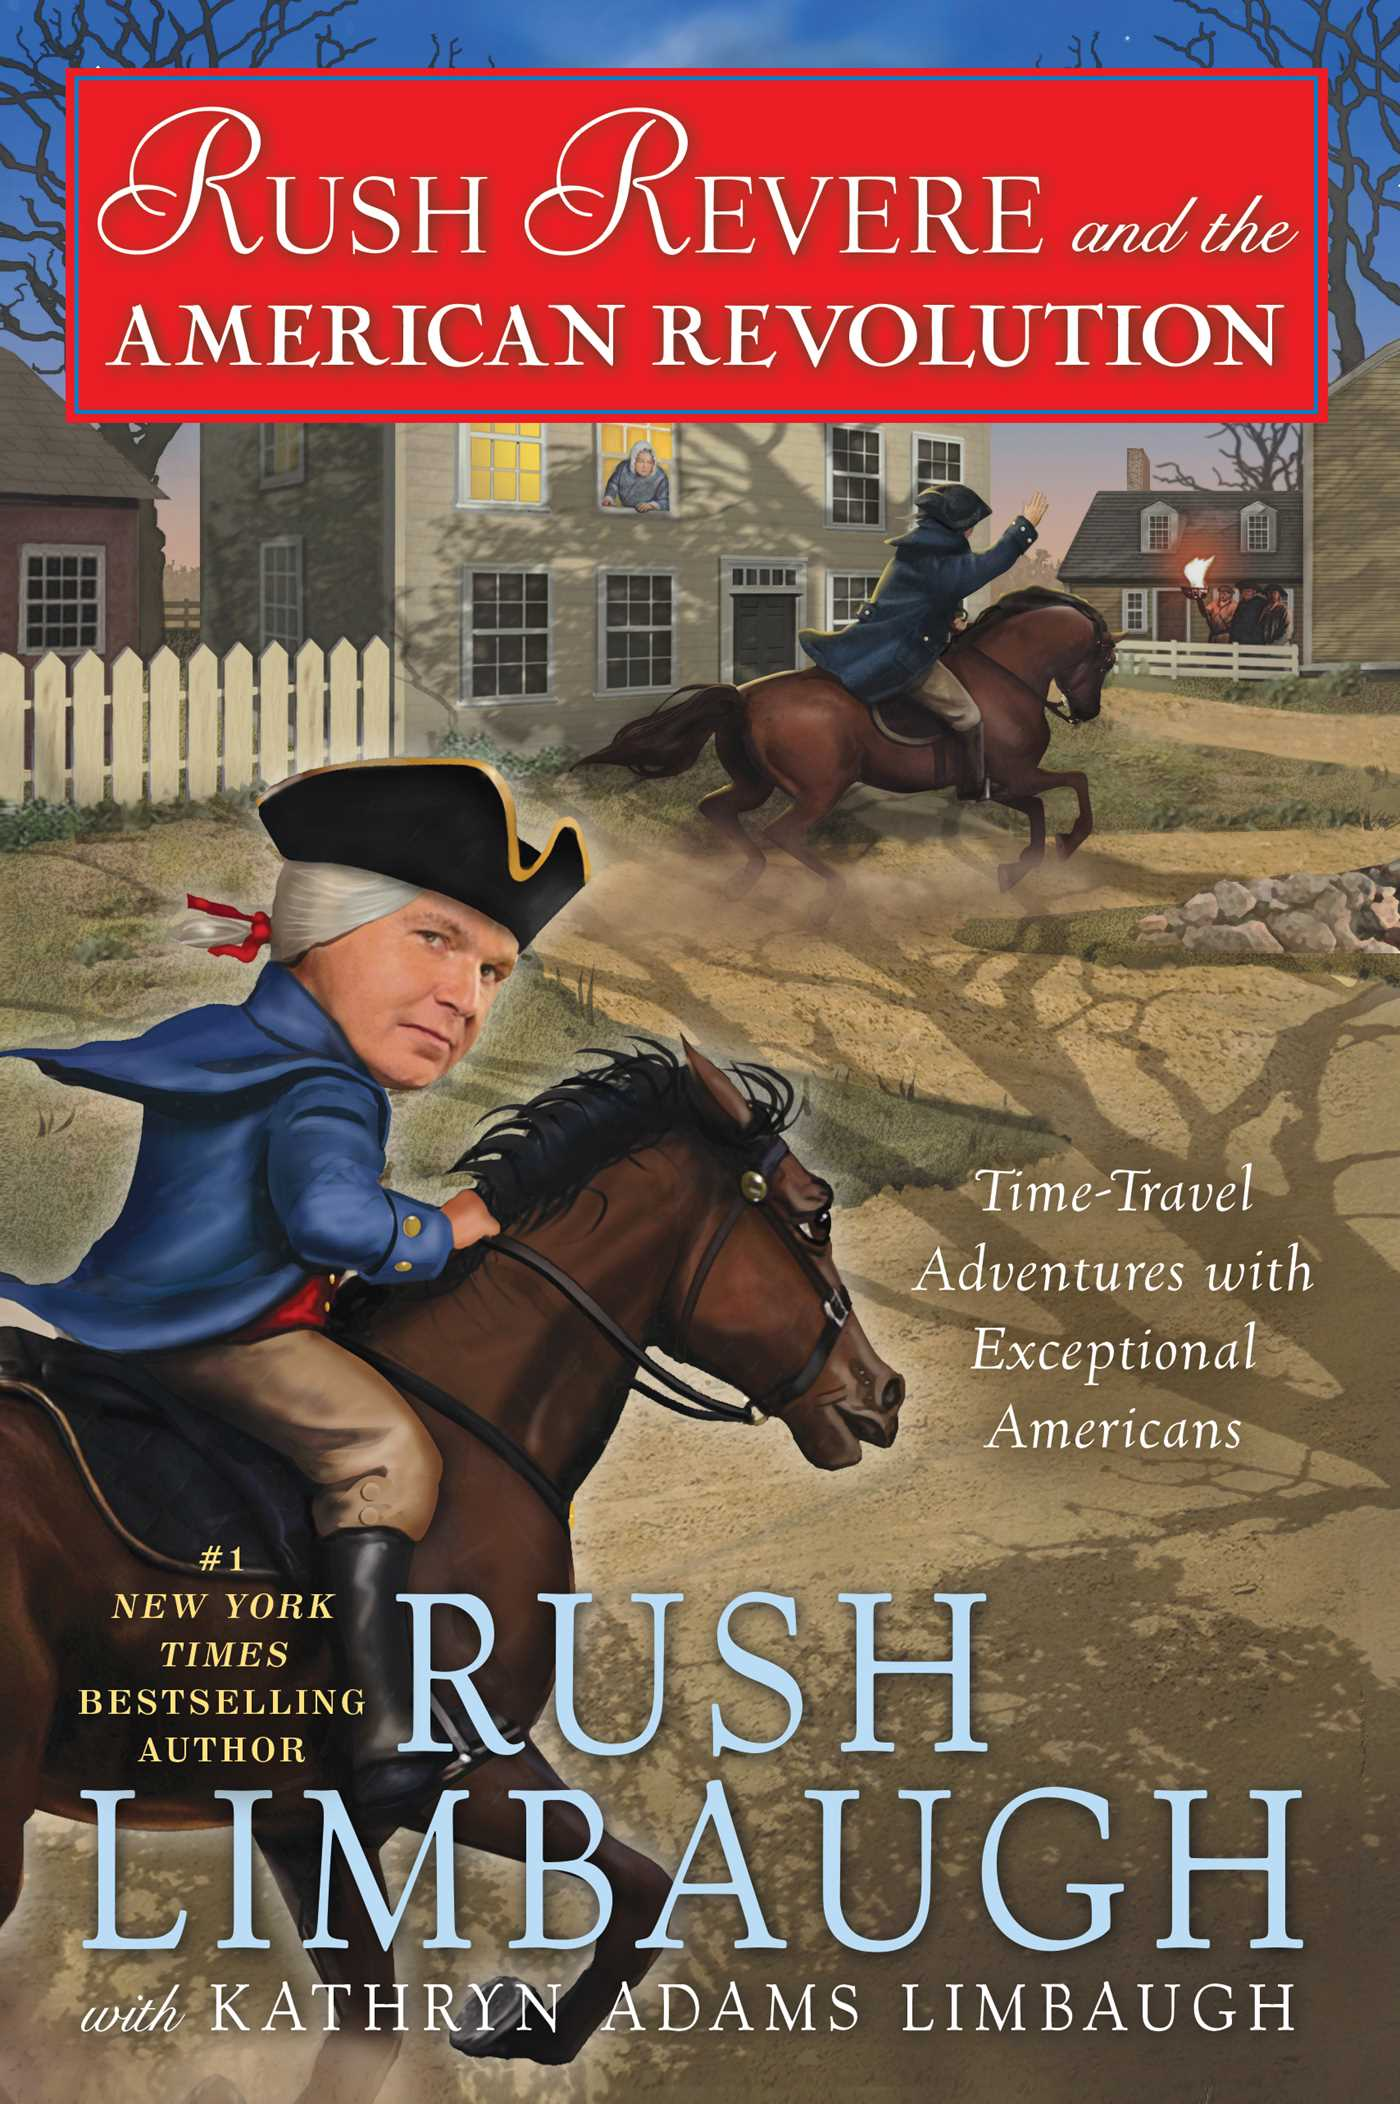 Rush-revere-and-the-american-revolution-9781476789910_hr